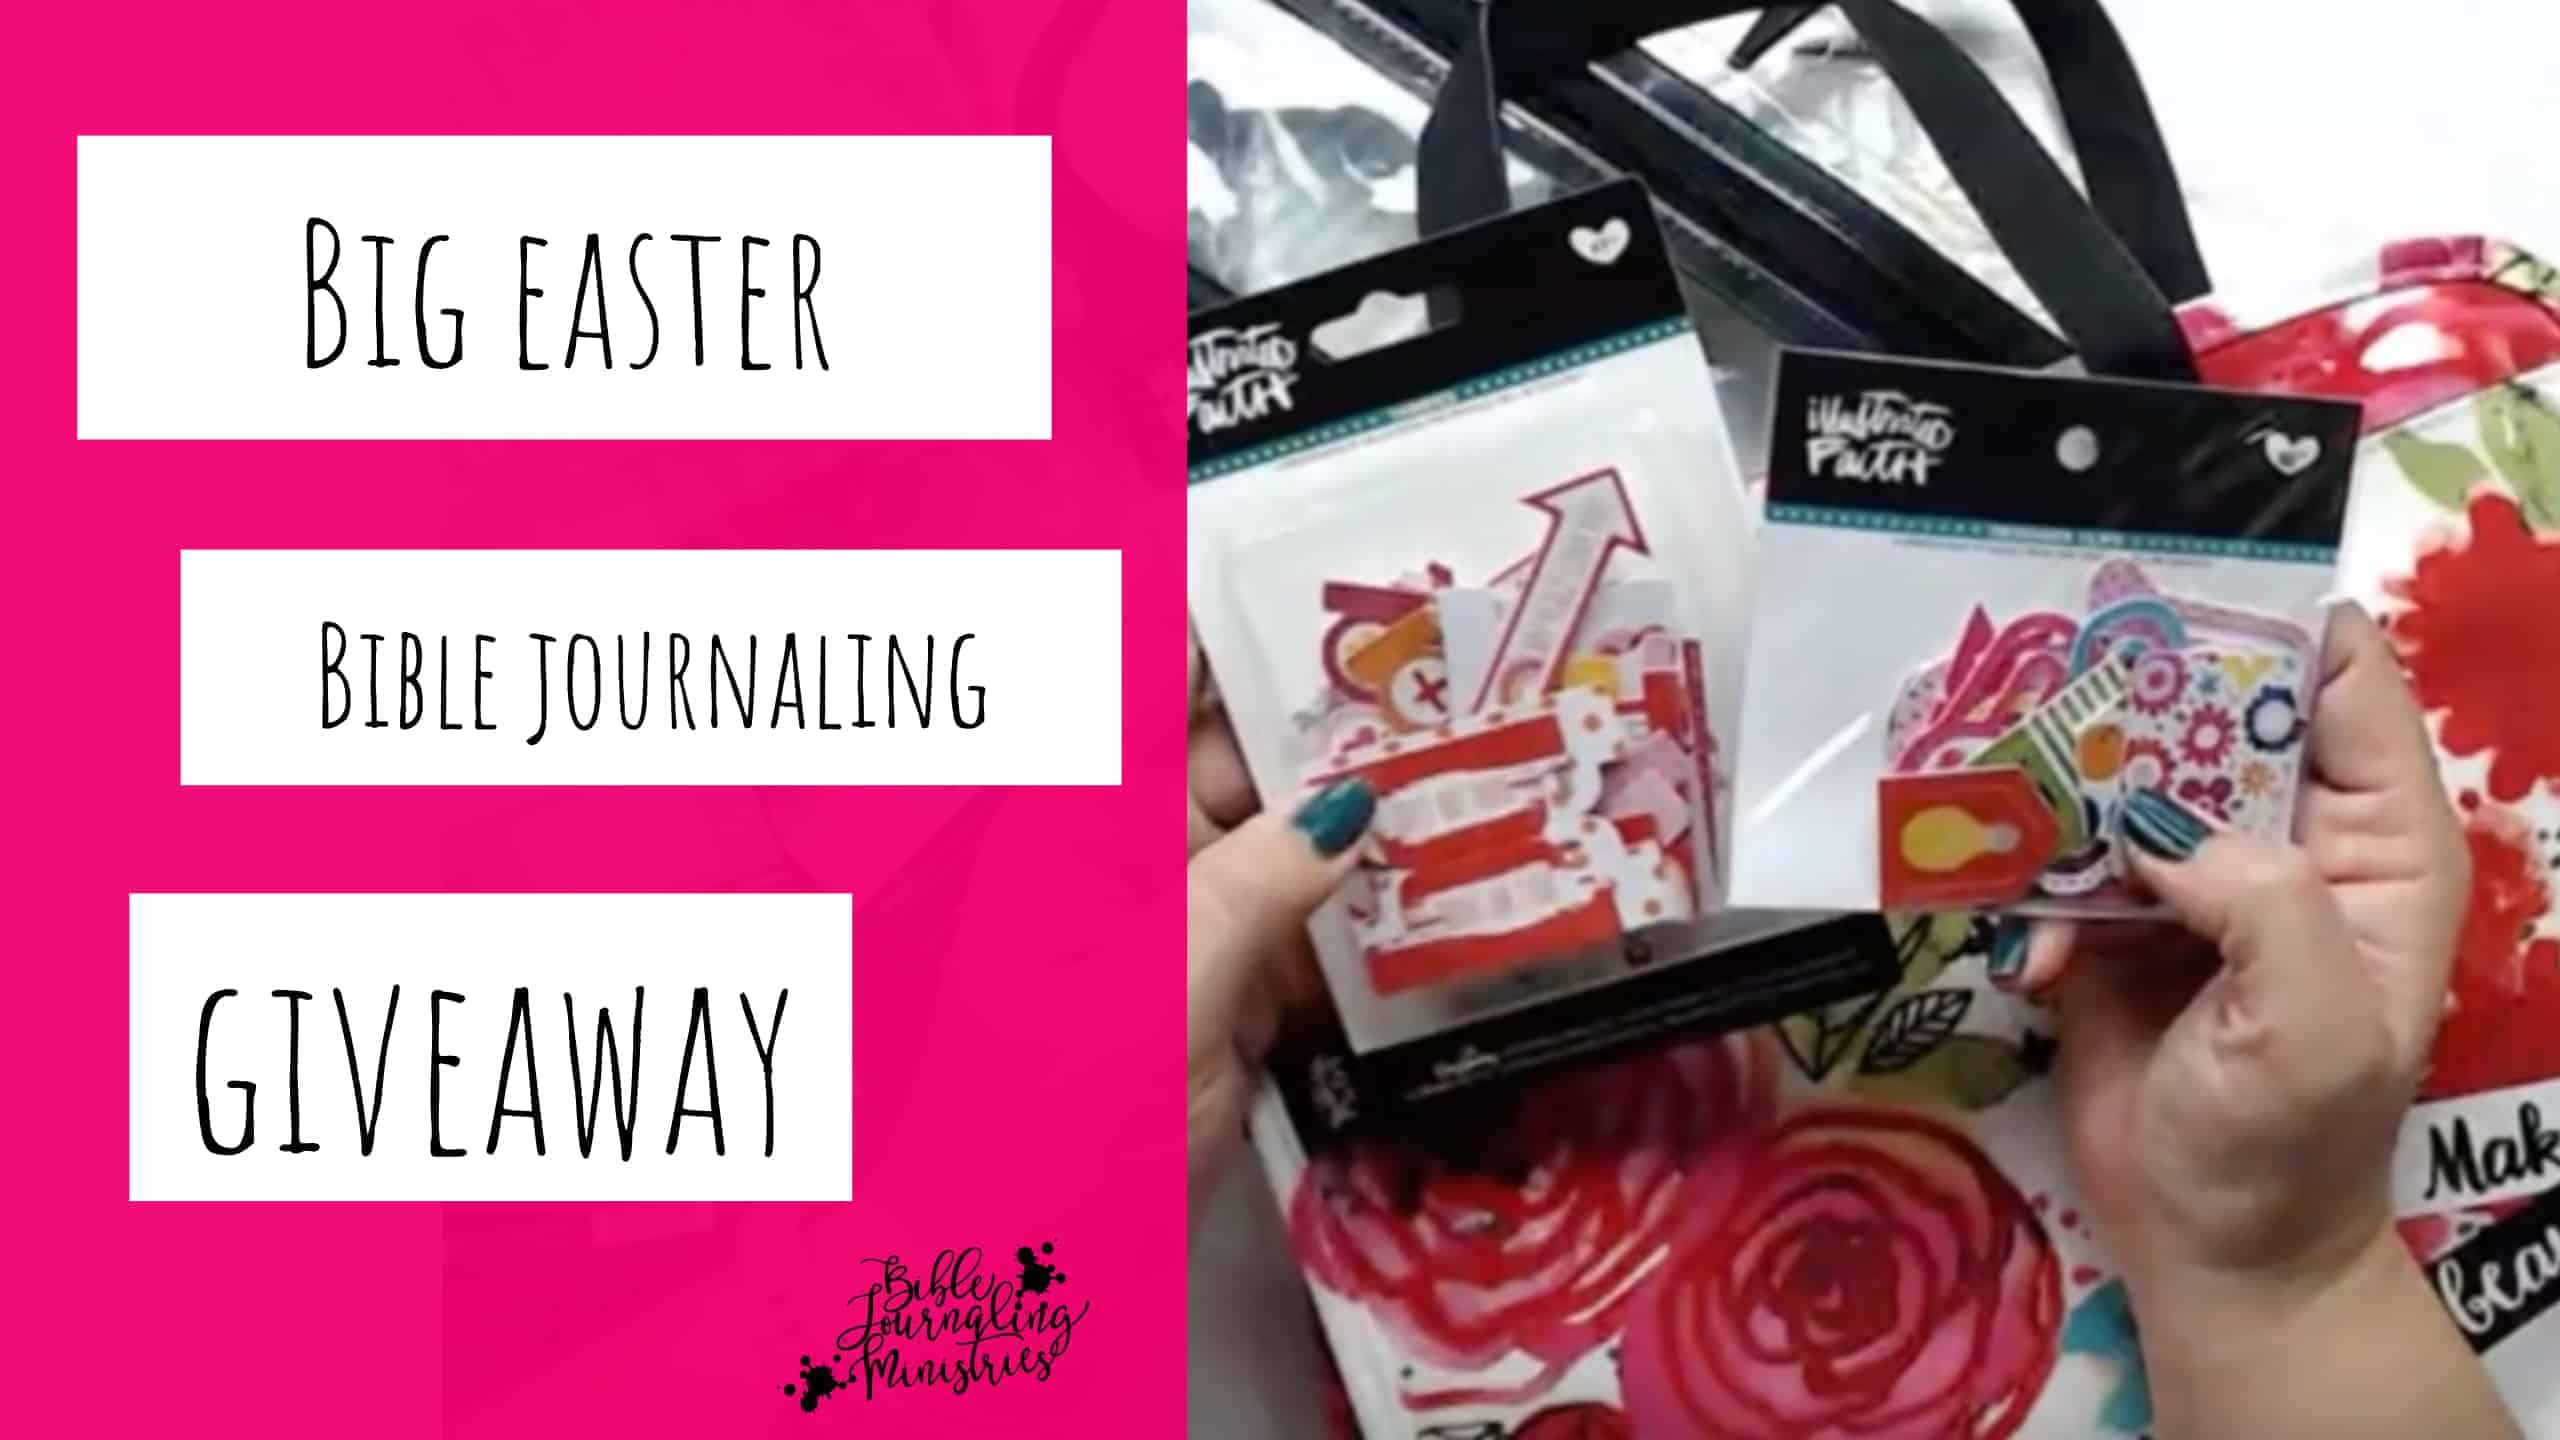 Enter to Win Bible Journaling Supplies Worth Over $100